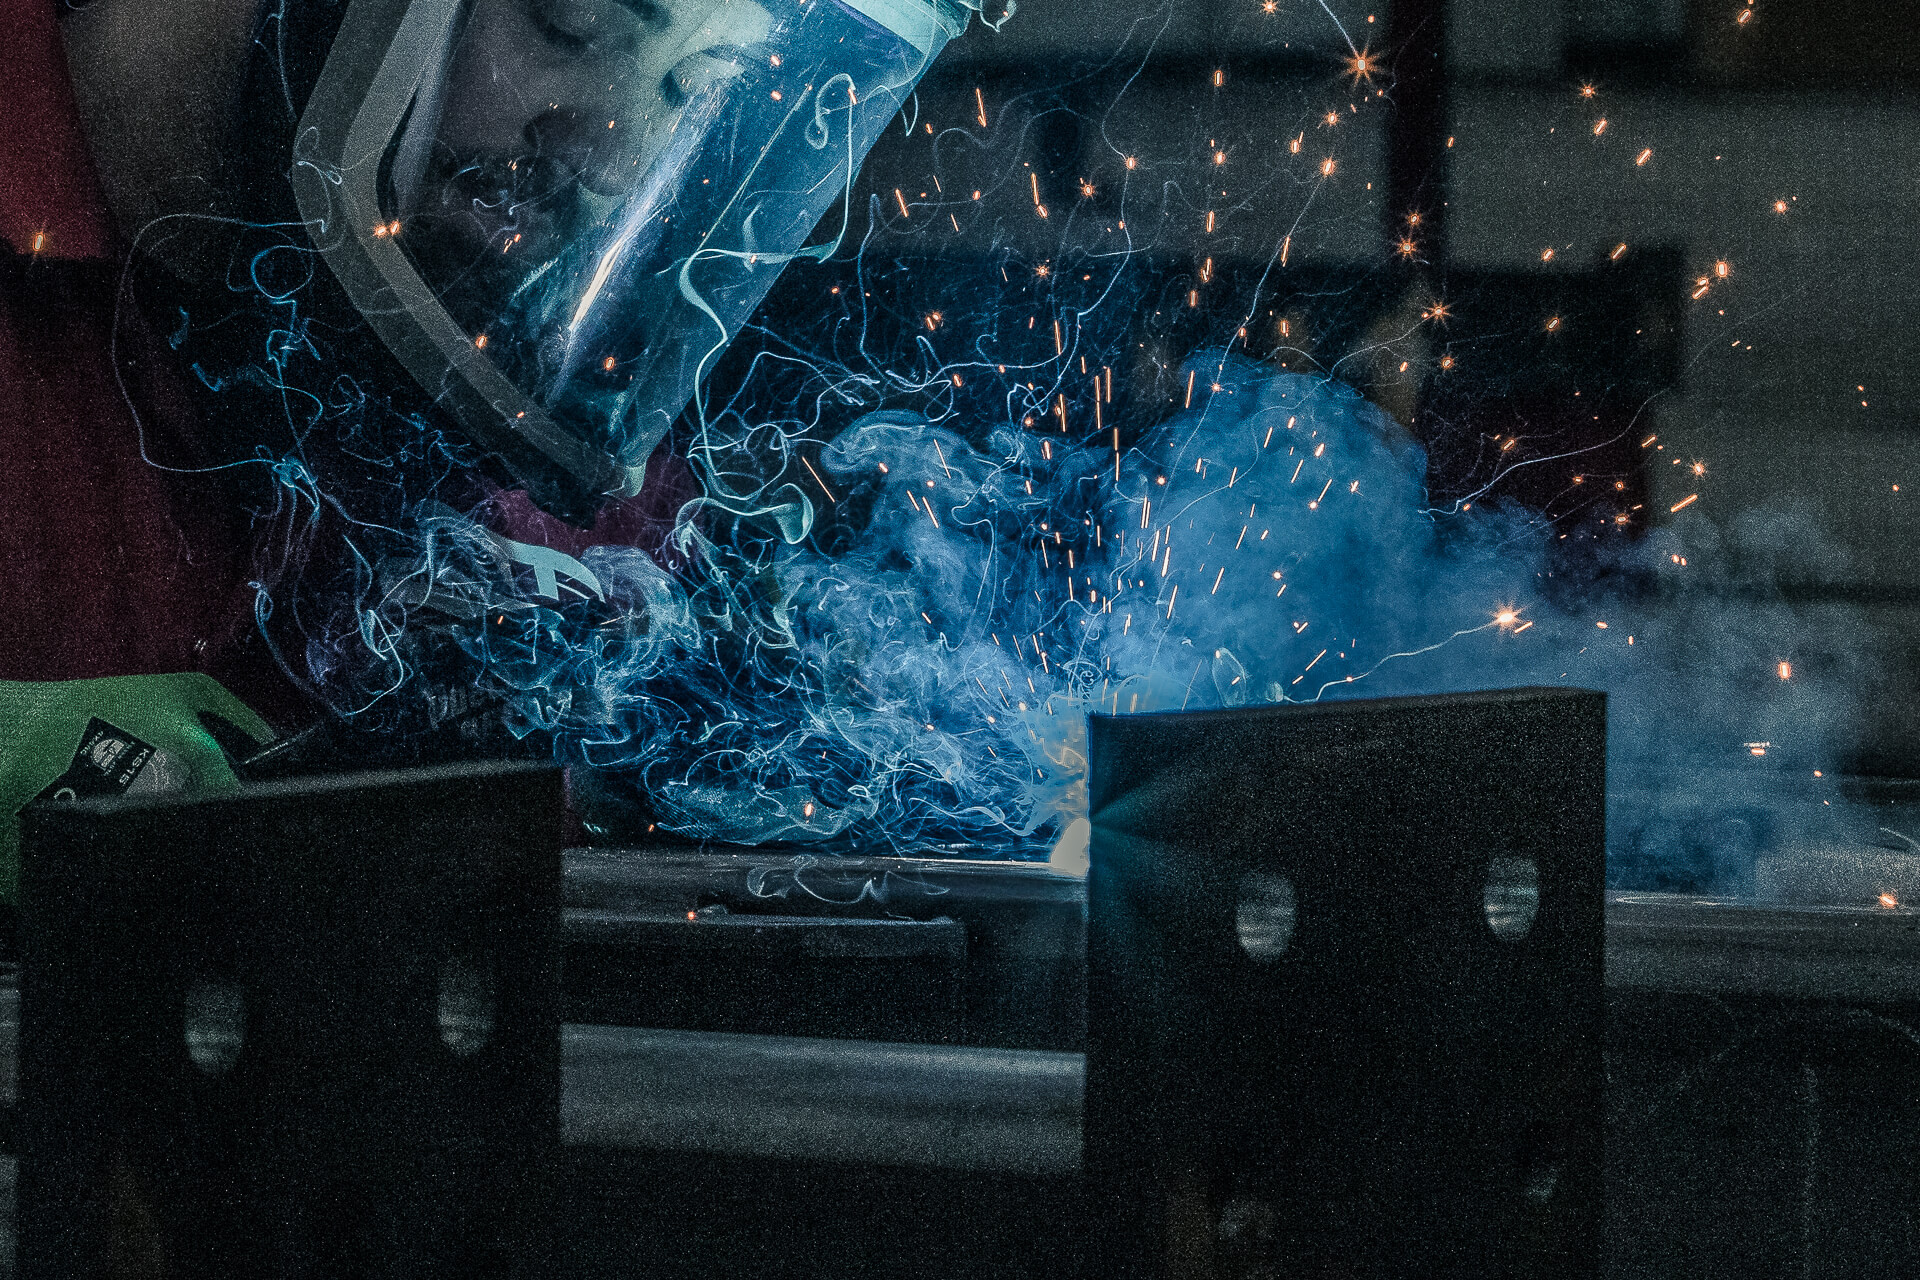 A colour close up image (head & hands) of a welder working on a steel beam. The image has a blue tinge to it from the welding process. There are smoke and sparks present as he works (the sparks are actually incandescent droplets with a temperature of around 1300degrees C!). The welder wears a full face welding helmet and protective clothing.